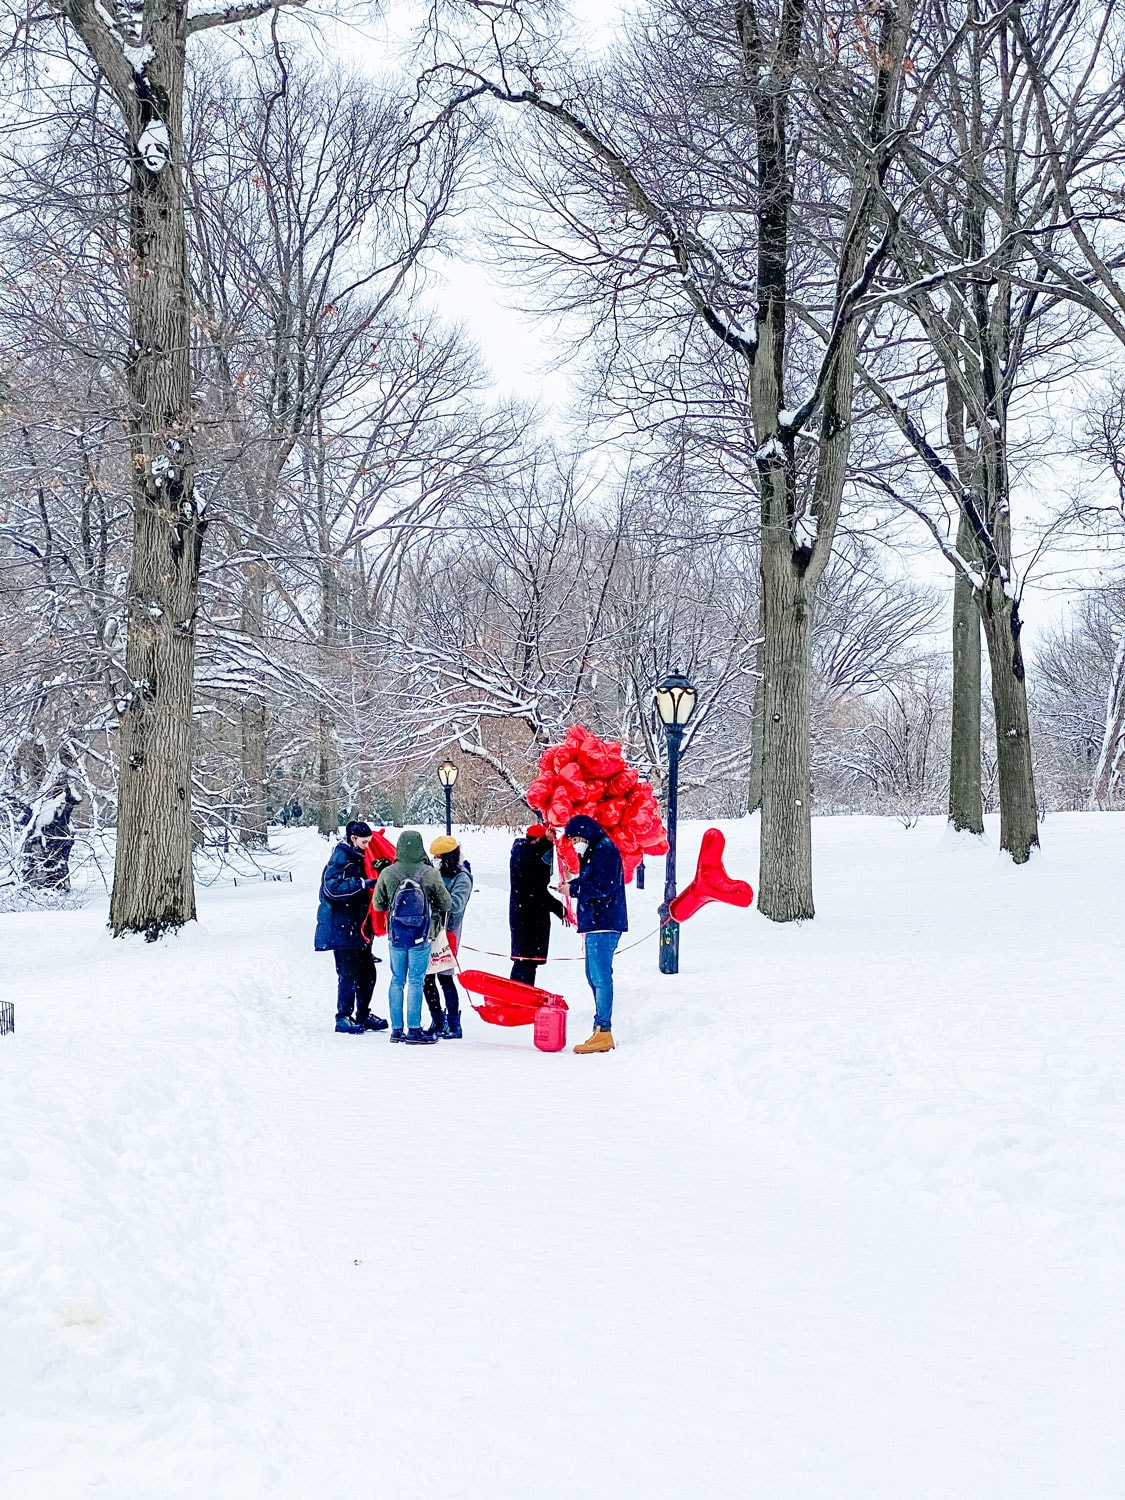 red balloons in Central Park in the snow